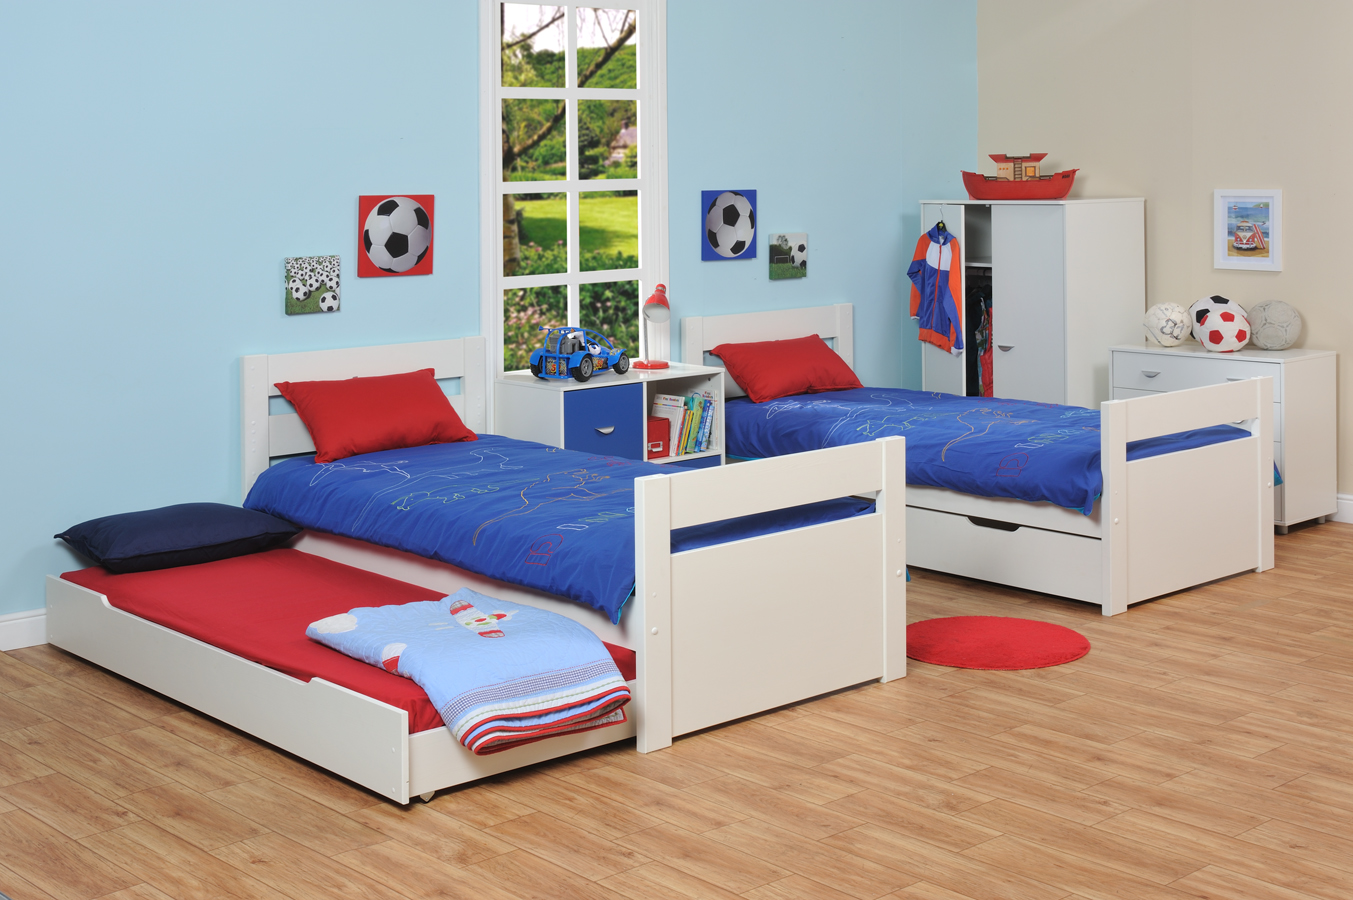 Two Room with Bunk Beds 1353 x 900